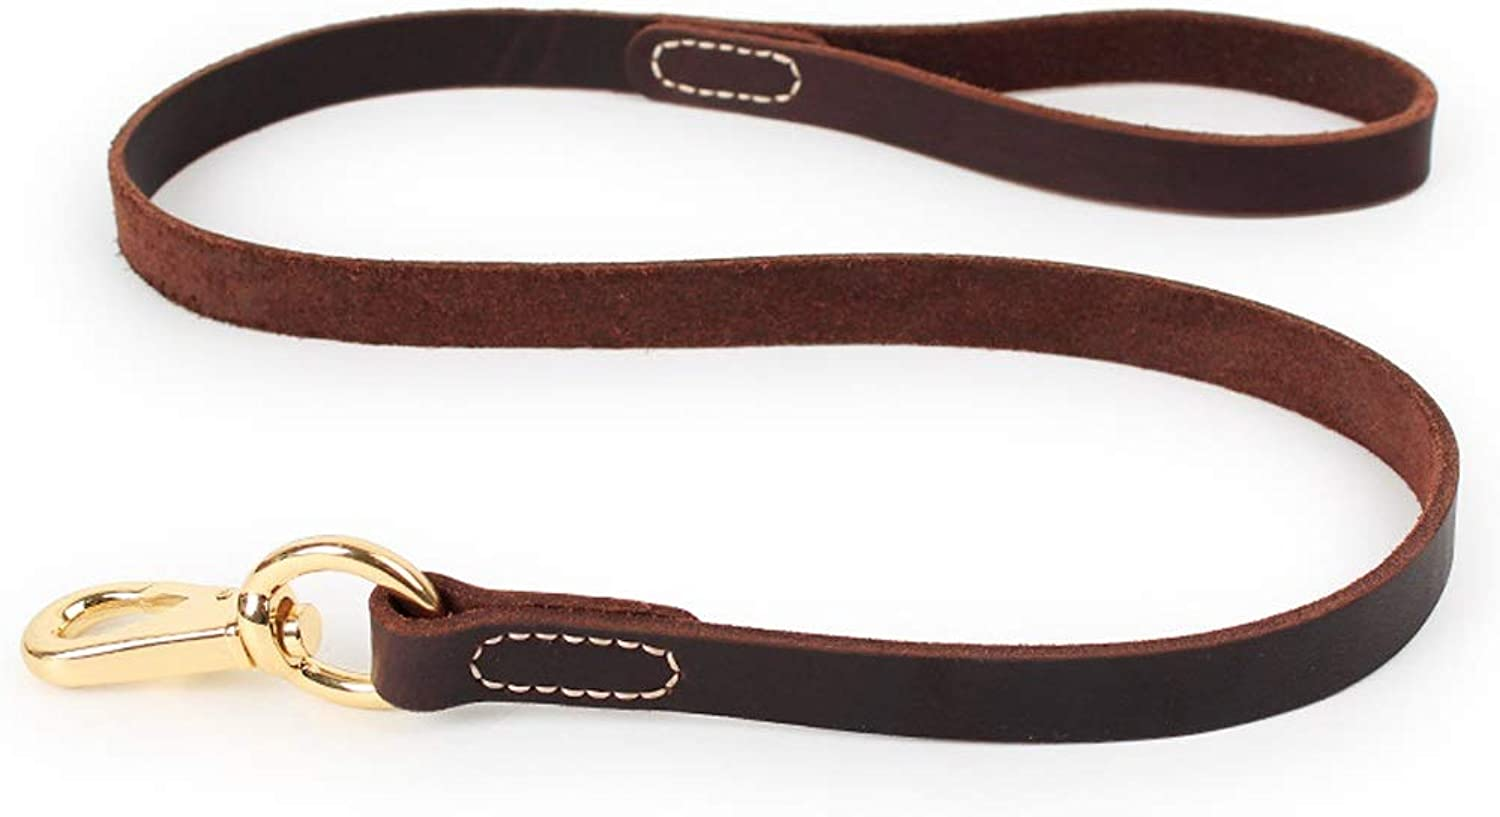 Dog Leash Large Medium Dog Canine Dog Rope Dog Chain Cowhide Material Is Not Easy To Wear Black Brown KGMYGS (color   Brown, Size   M)